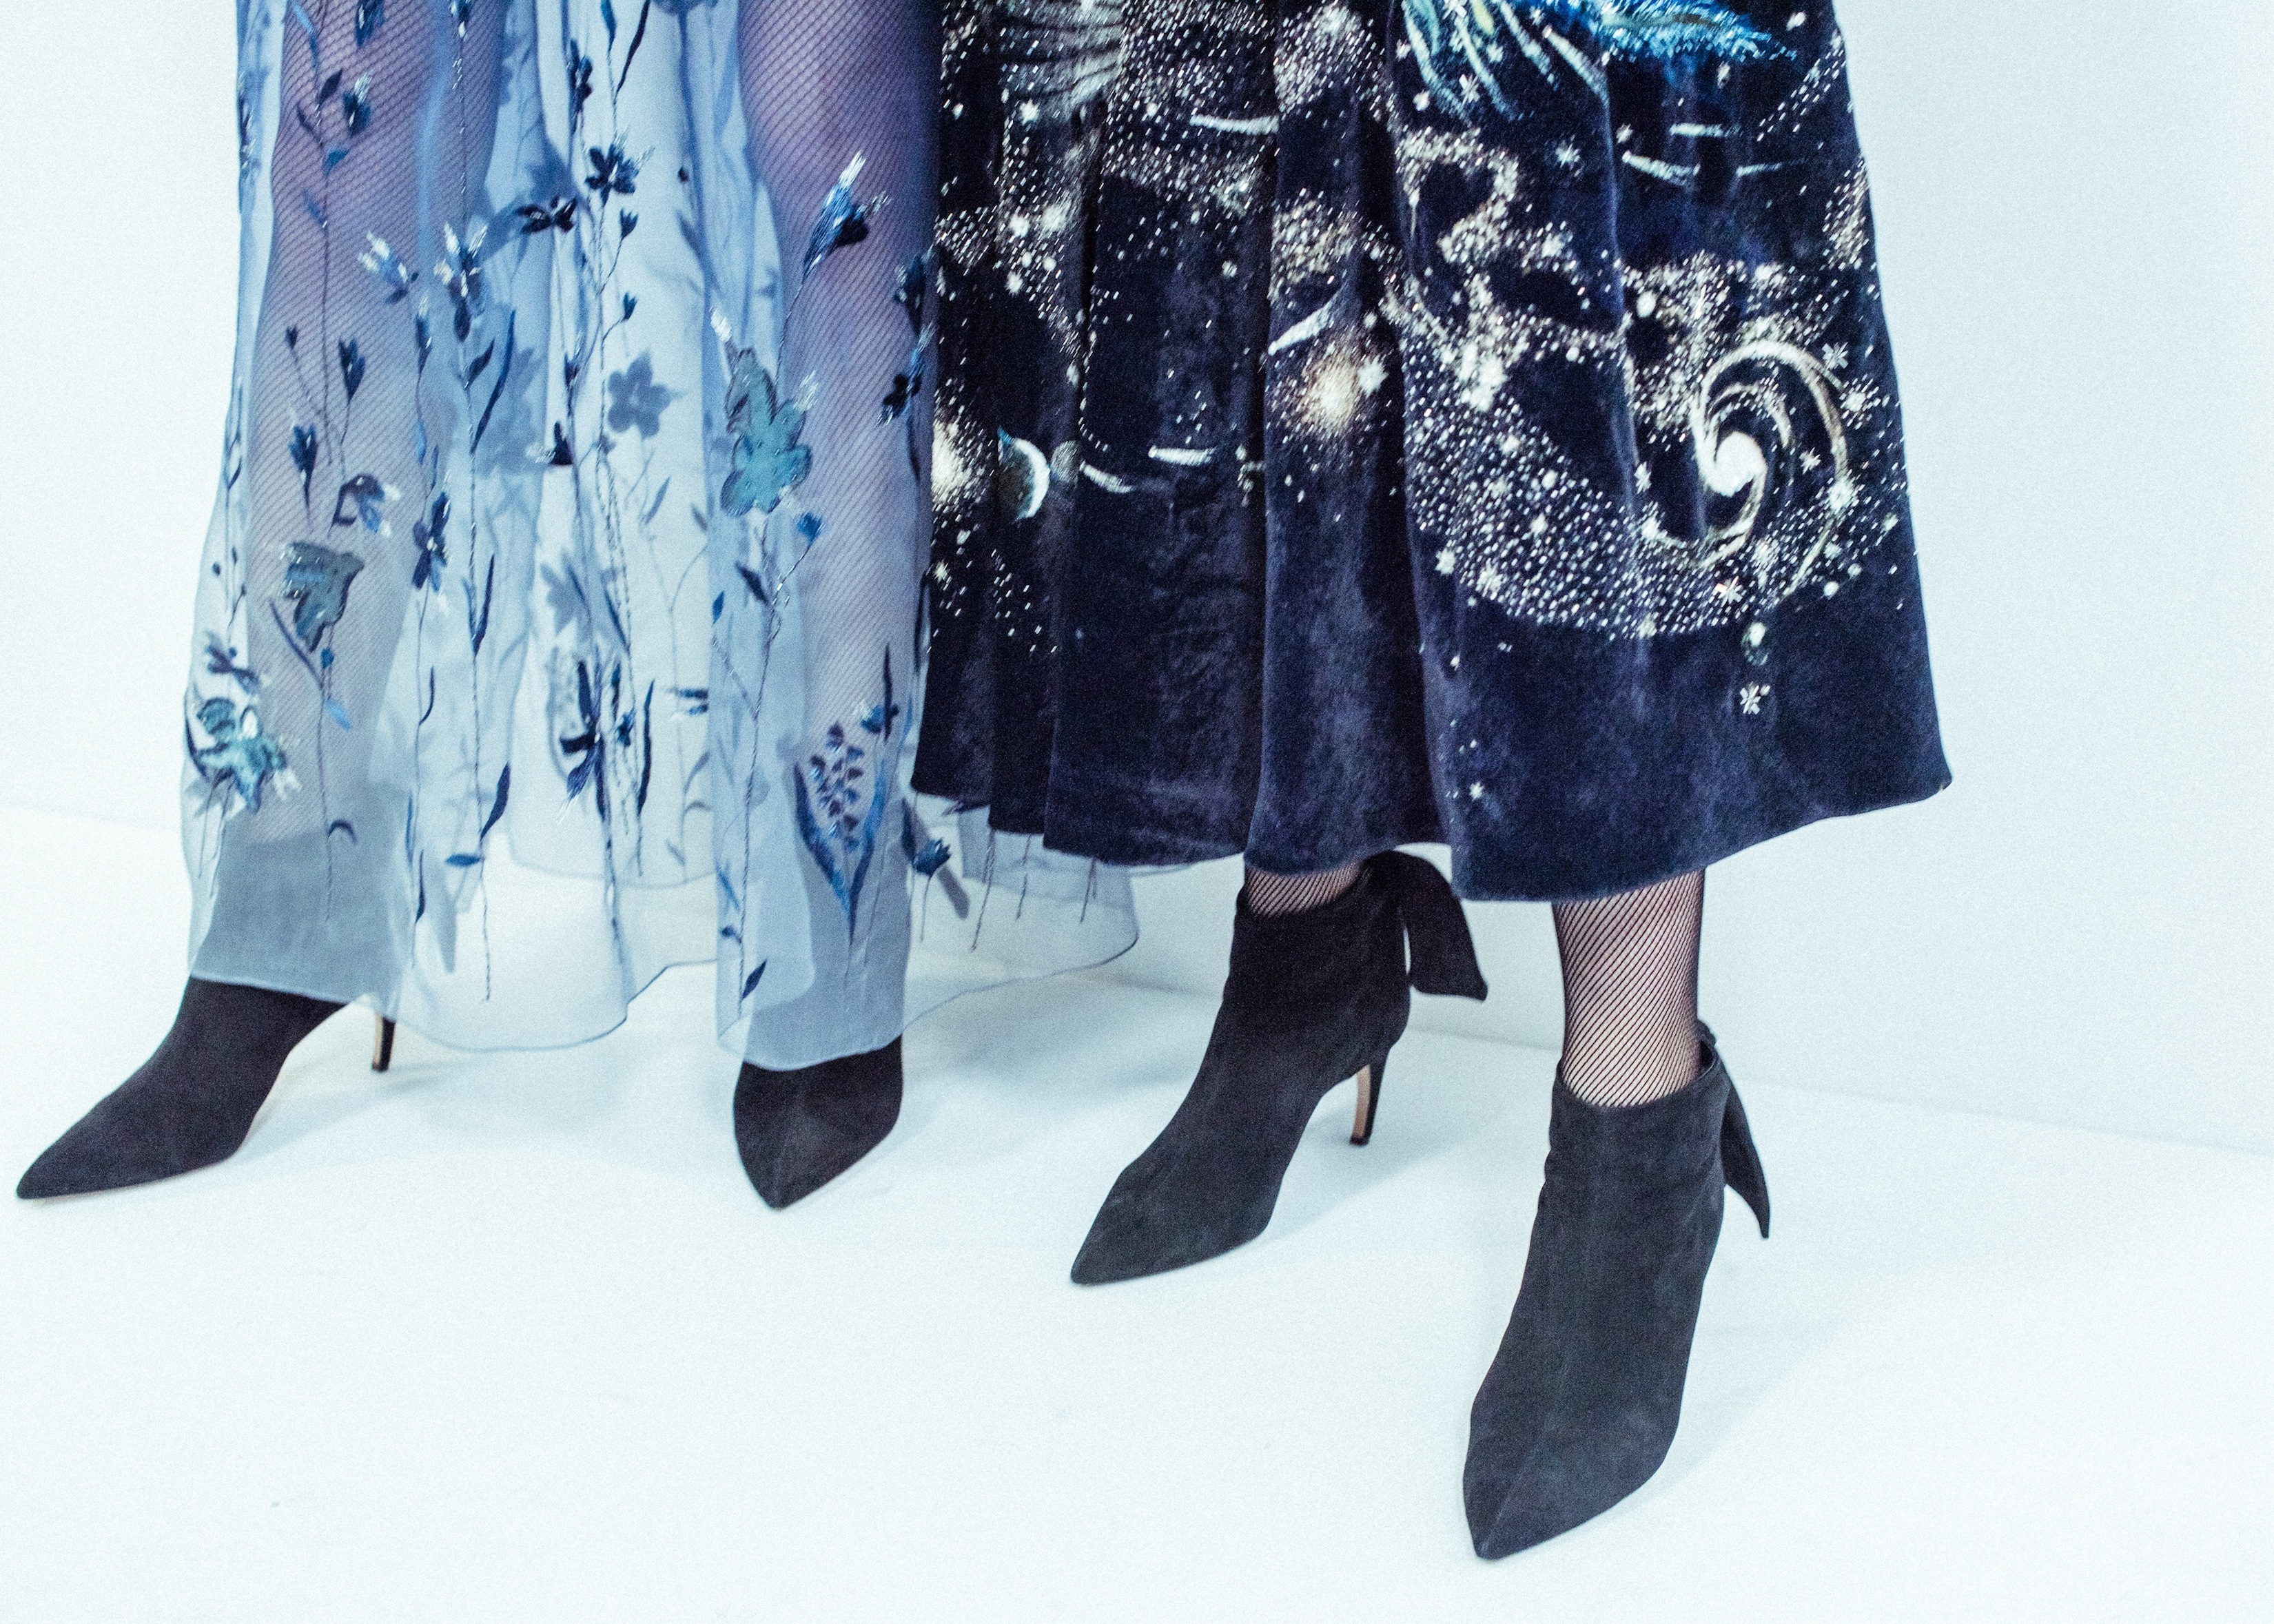 Dior AW 2017/18 RTW show: An exclusive first look at backstage images